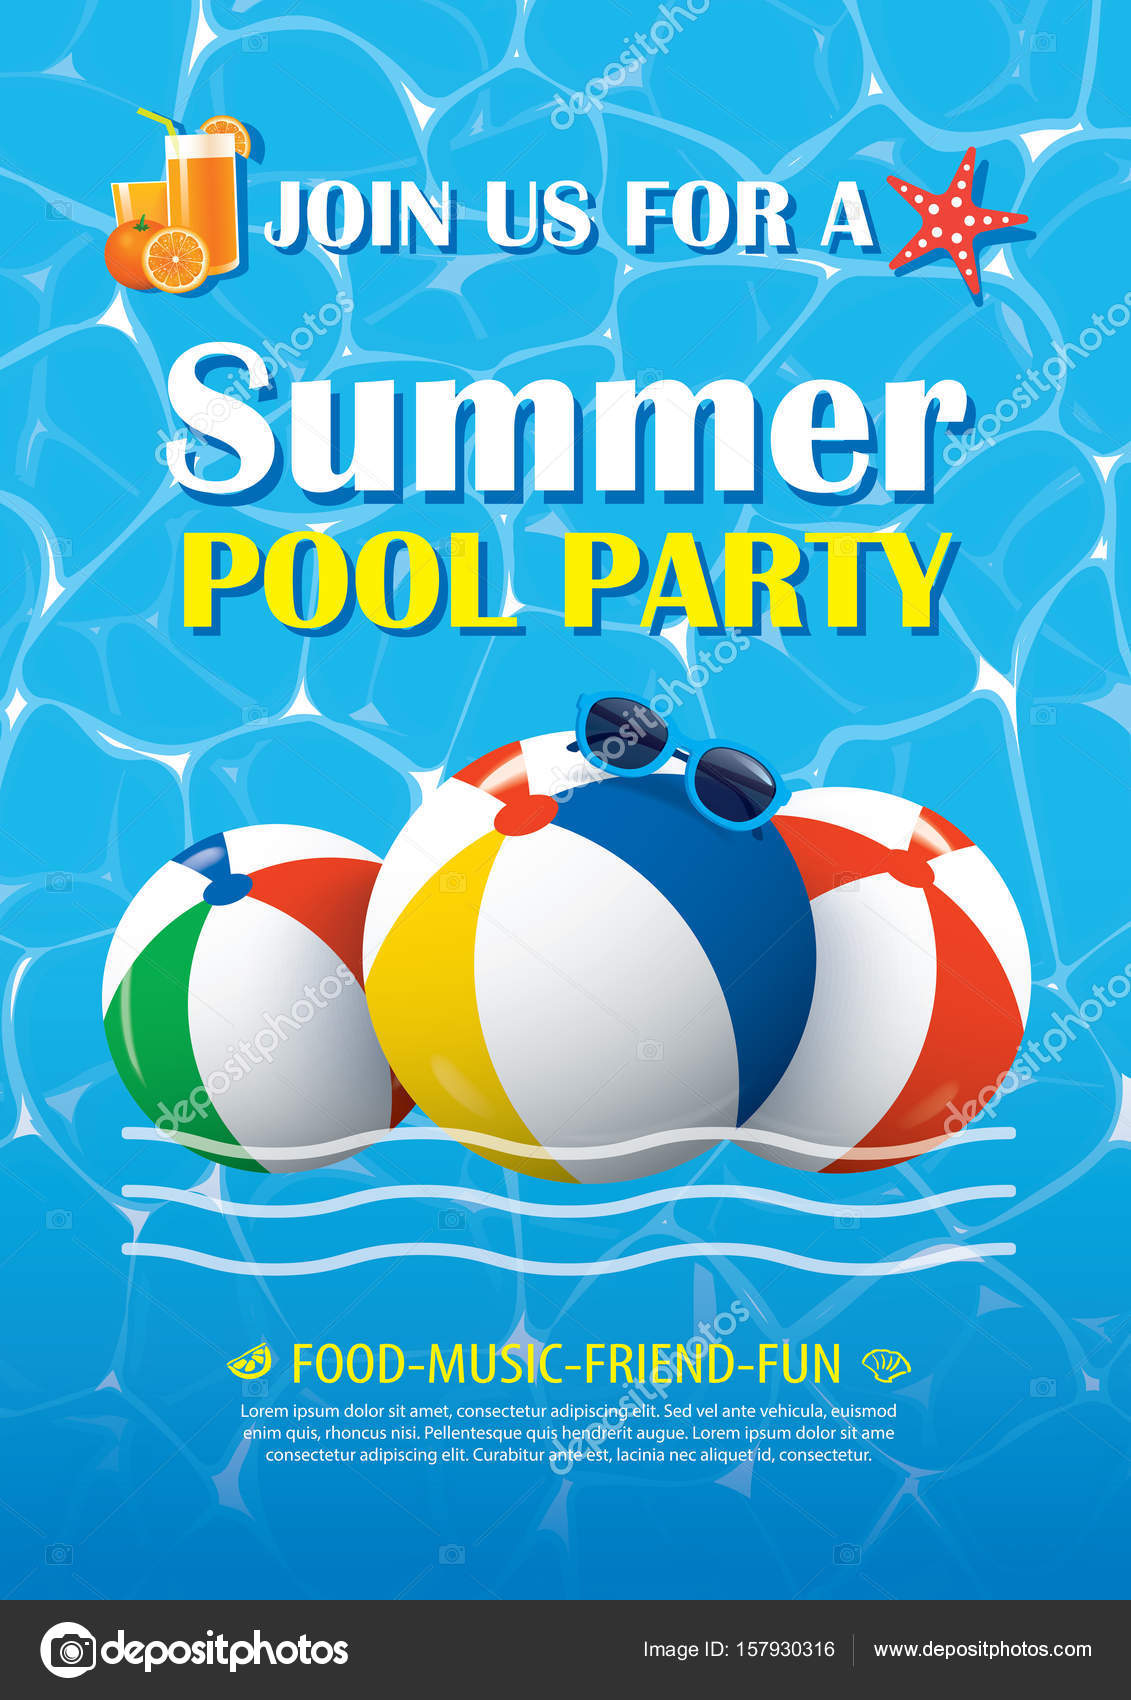 Pool Party Invitation Poster With Blue Water. Vector Summer — Stock Vector